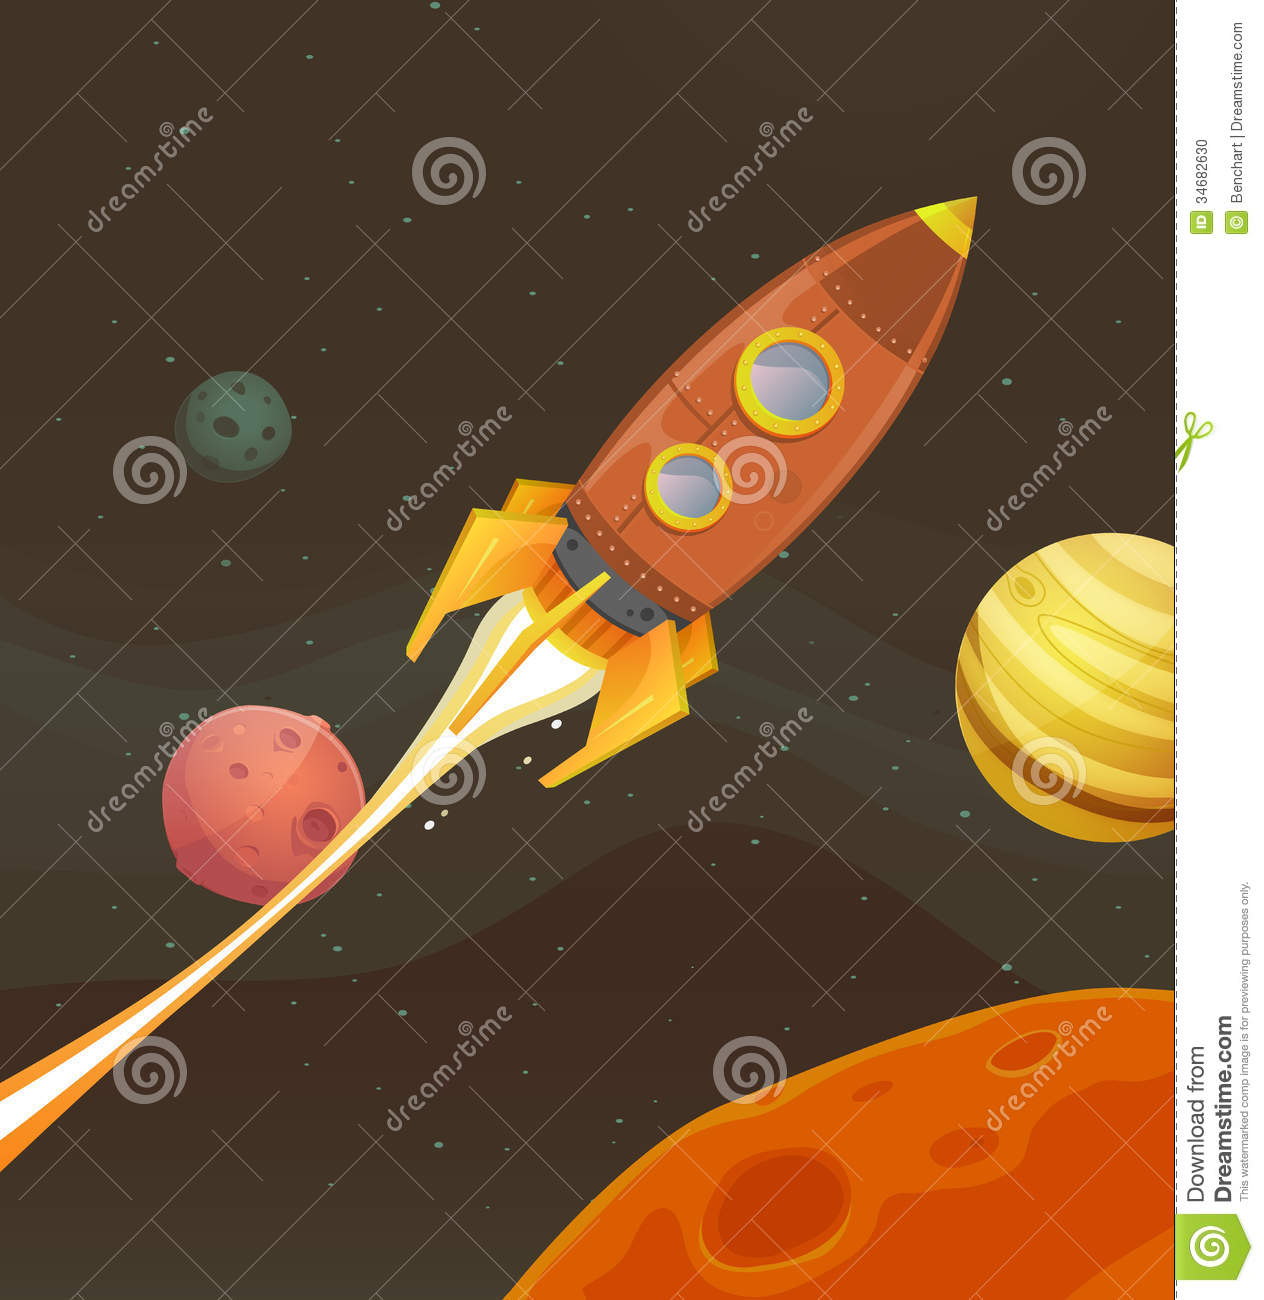 Rocket ship flying through space stock vector for Flying spaces